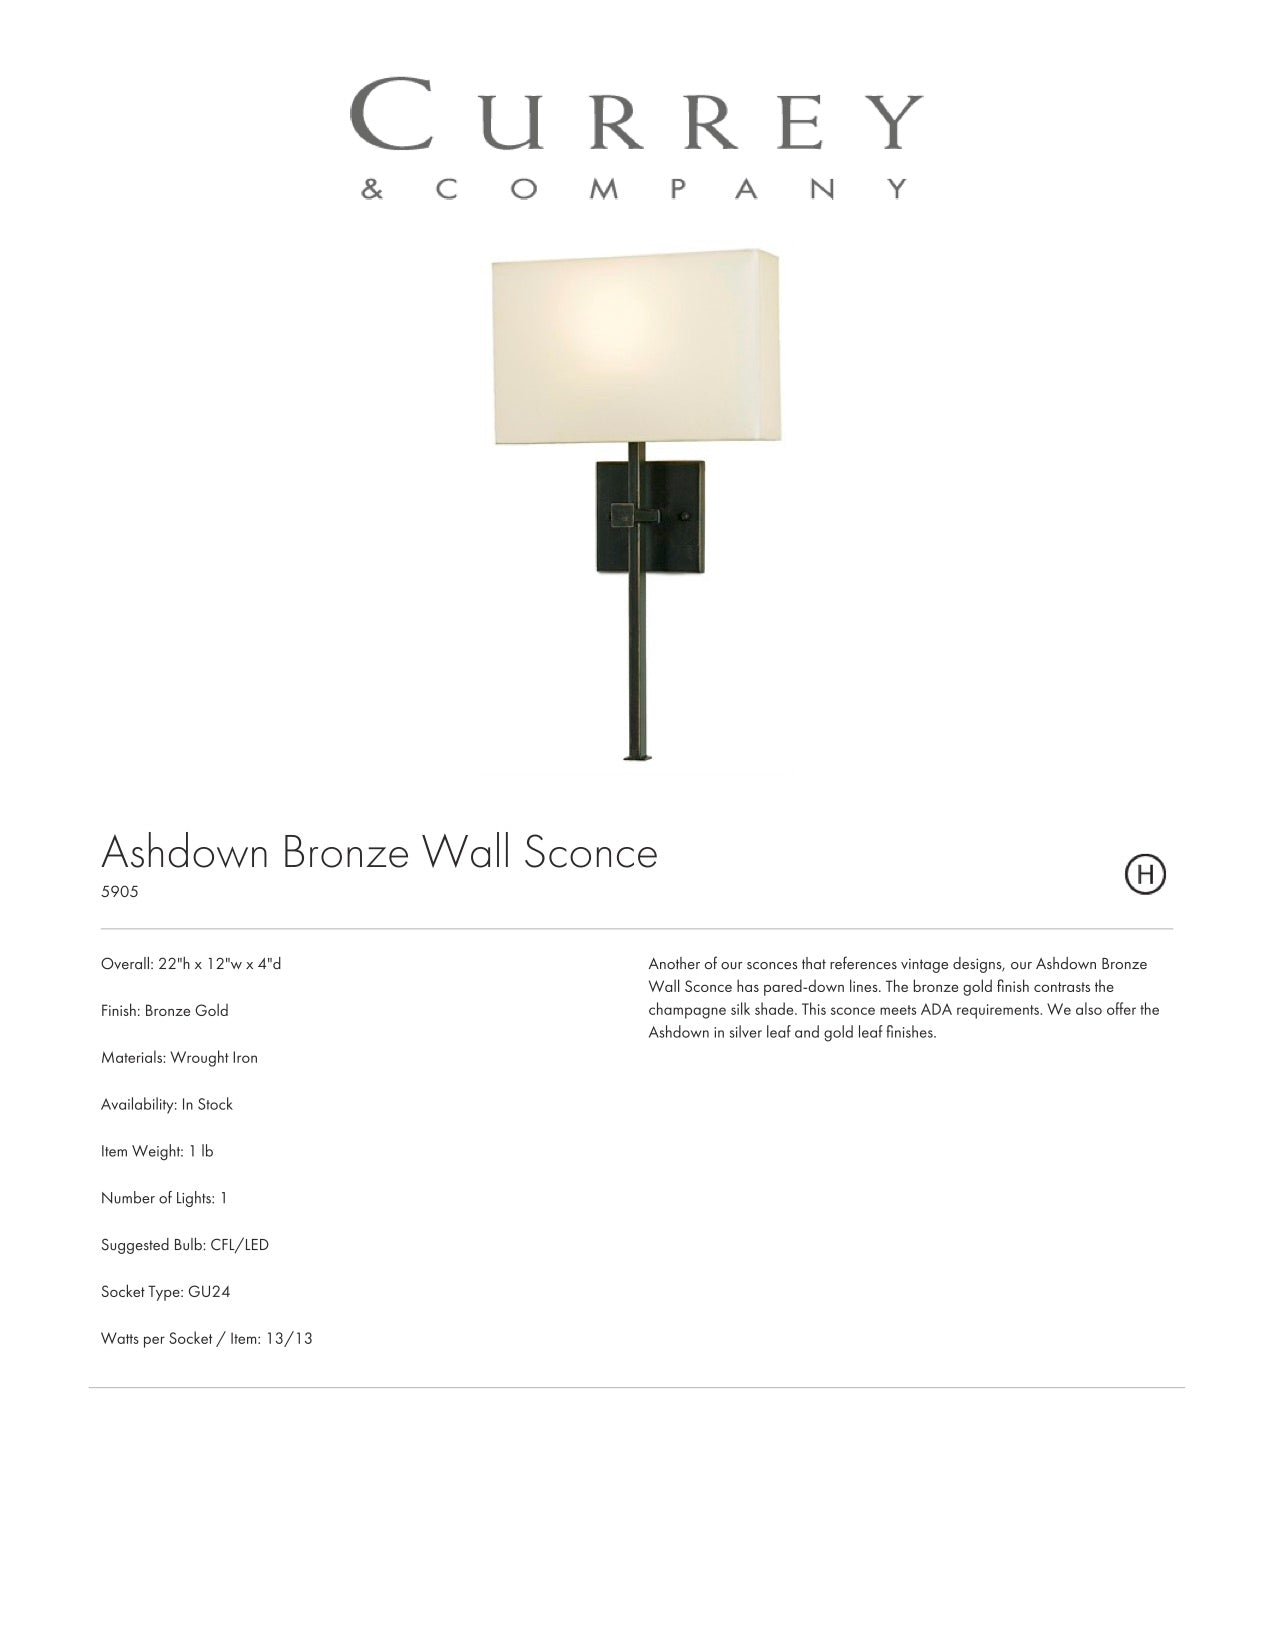 Currey & Company Ashdown Bronze Wall Sconce Tearsheet